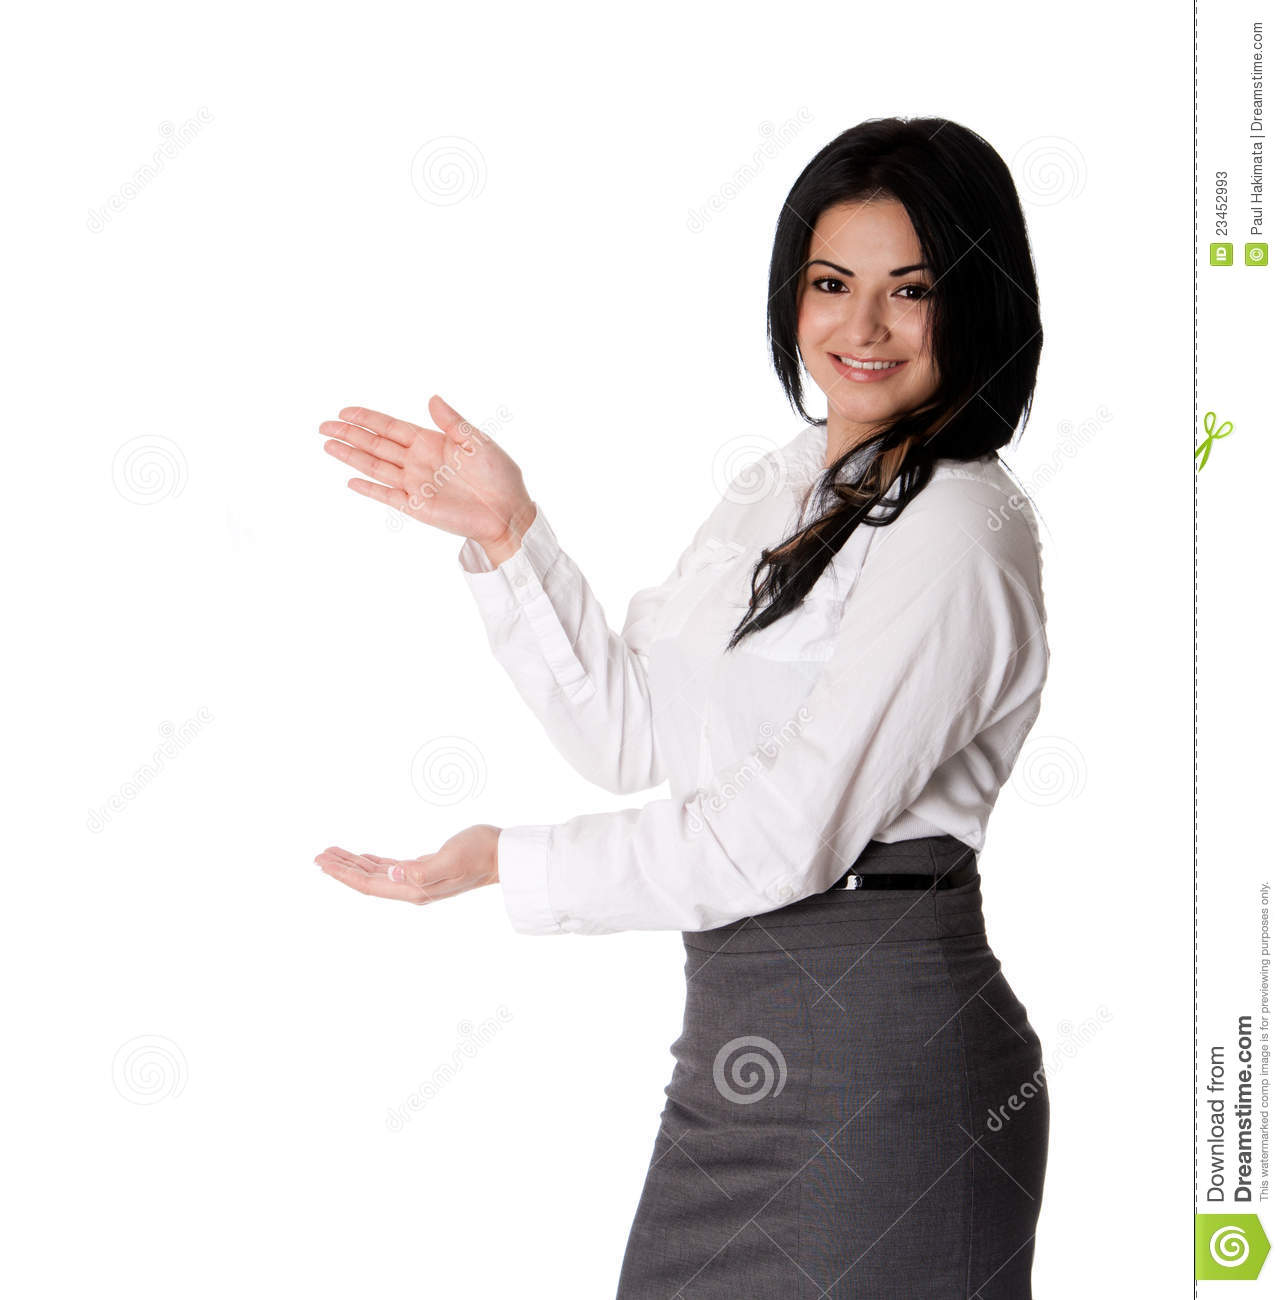 happy-business-woman-presentation-23452993.jpg